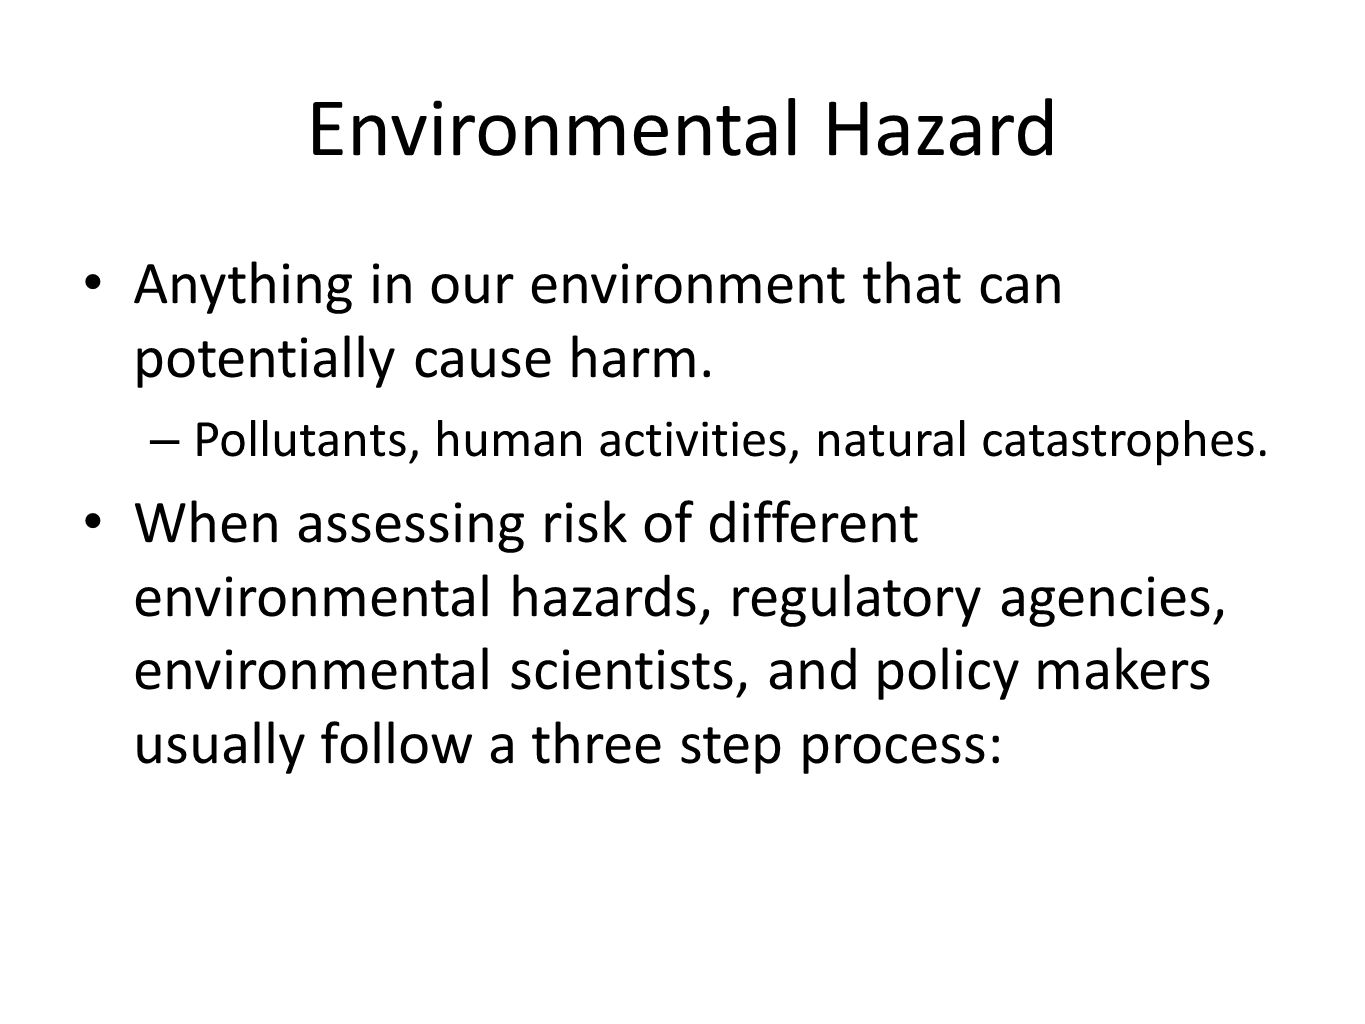 human enviromental hazards Natural and human induced hazards and environmental waste management – vol iii - natural and human induced hazards - chen yong ©encyclopedia of life support systems (eolss) introduced briefly, with some consideration of their mechanism, characteristics, and possible future development.